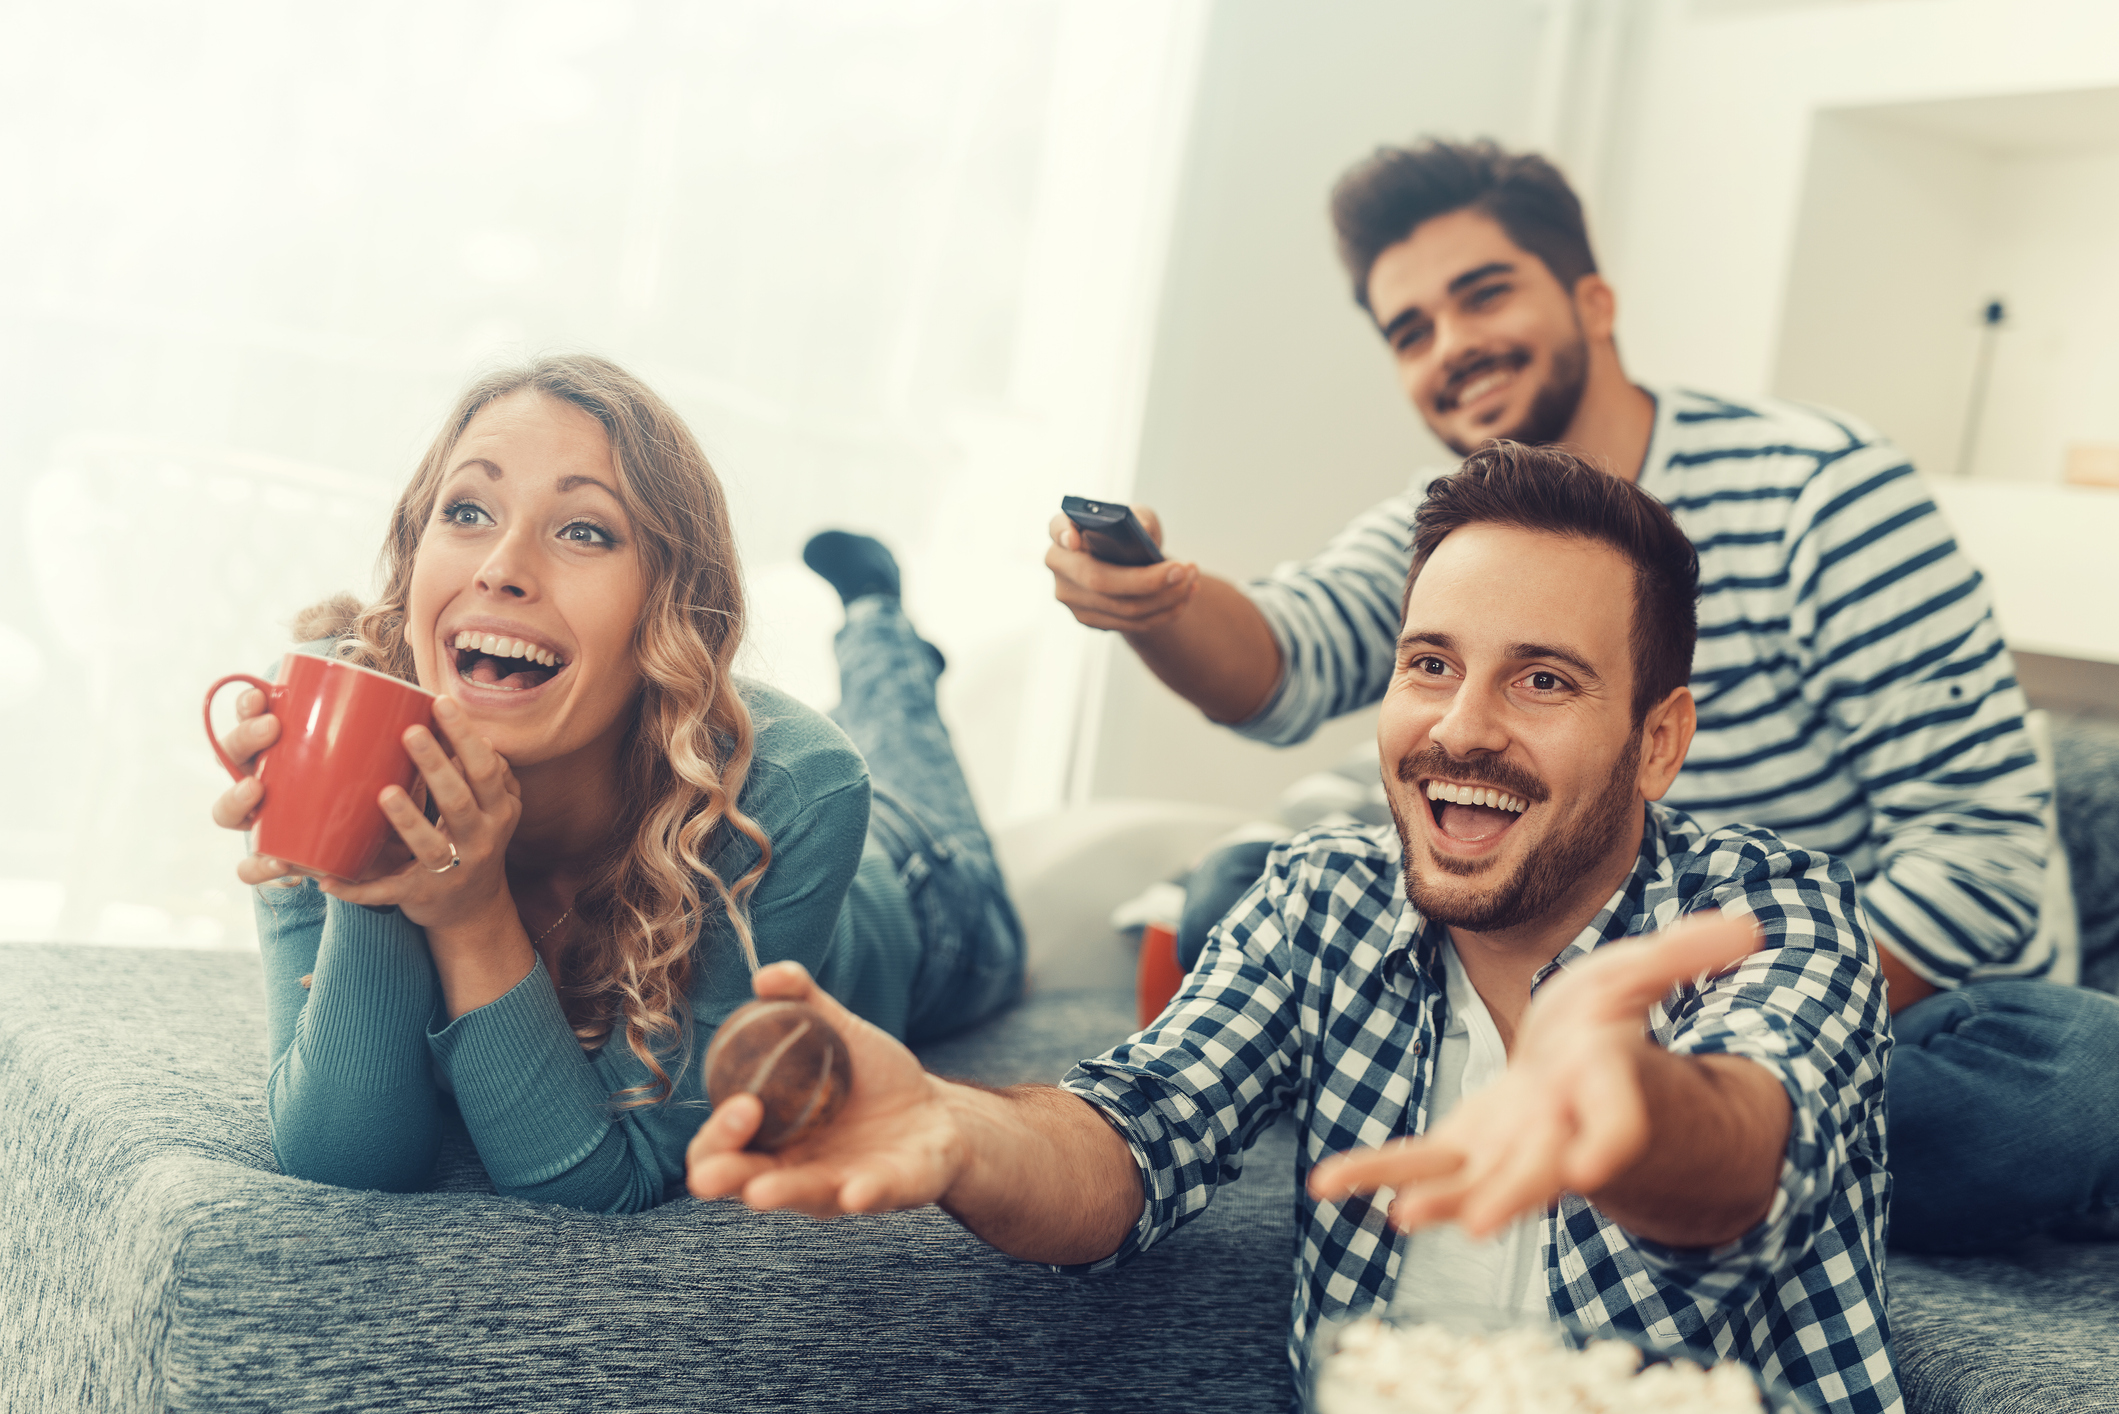 Group of friends smiling and watching television together.